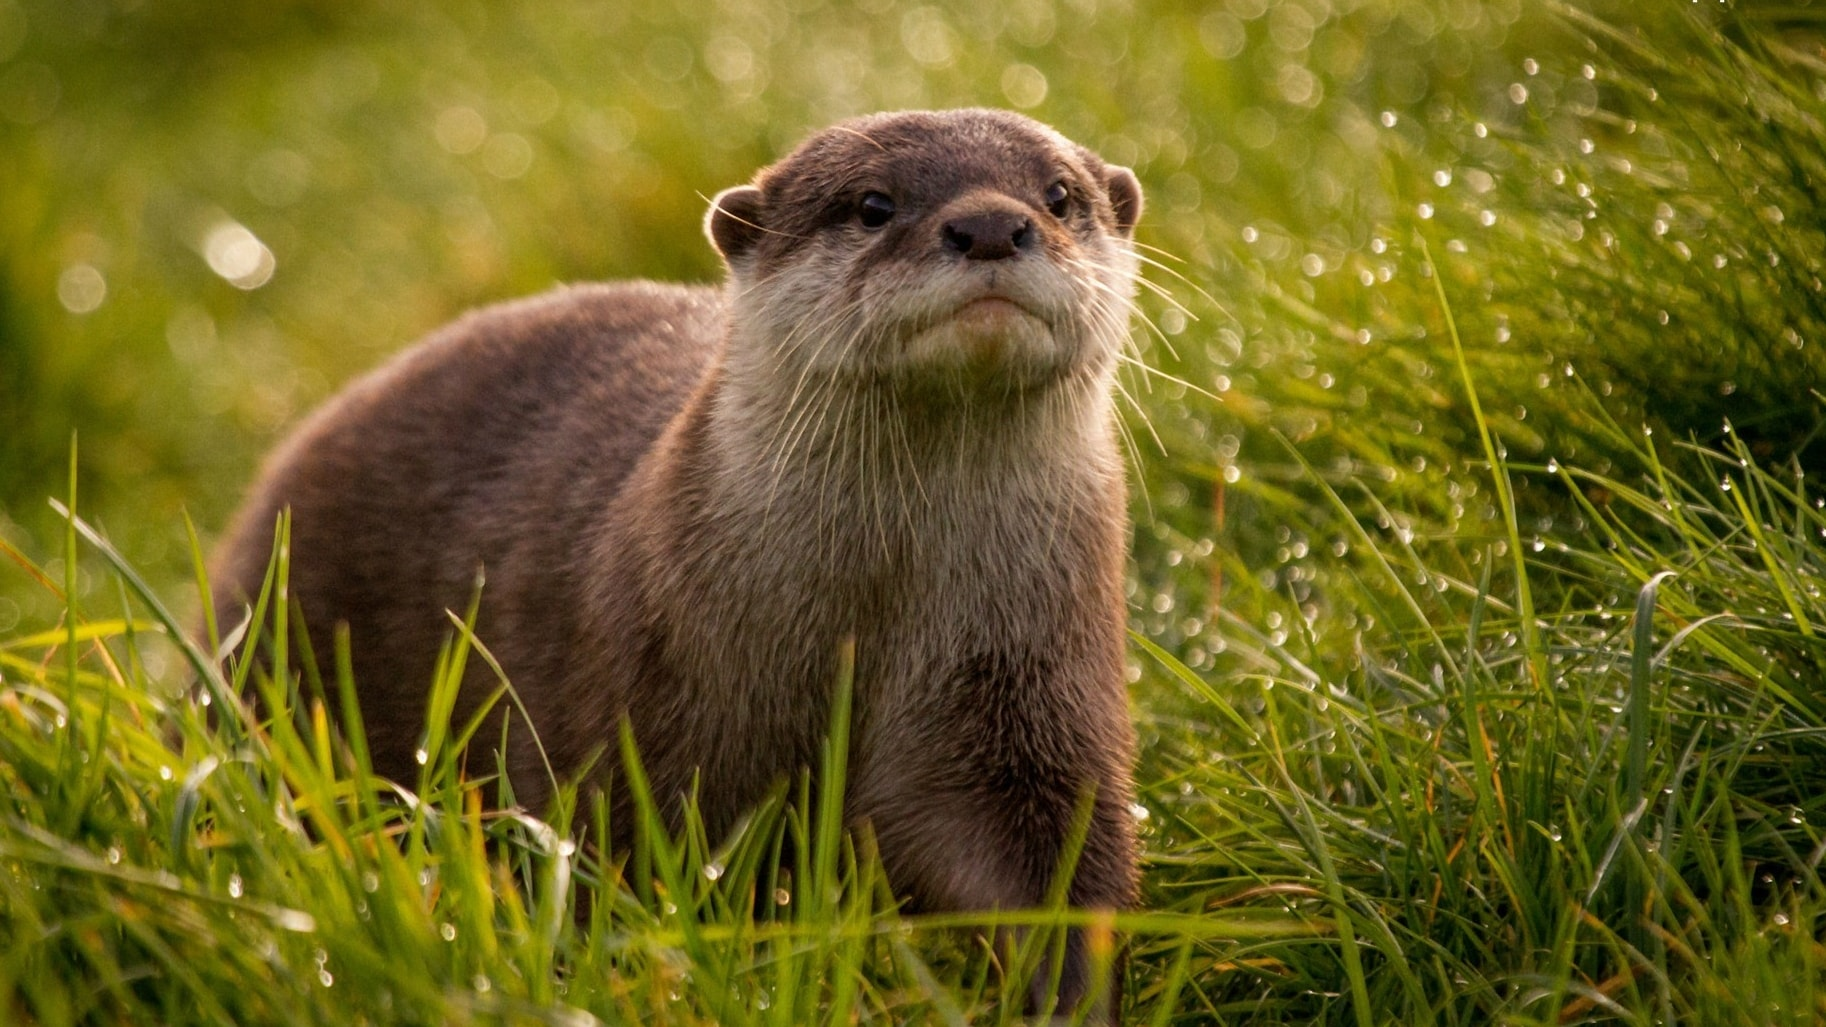 Otter HQ wallpapers